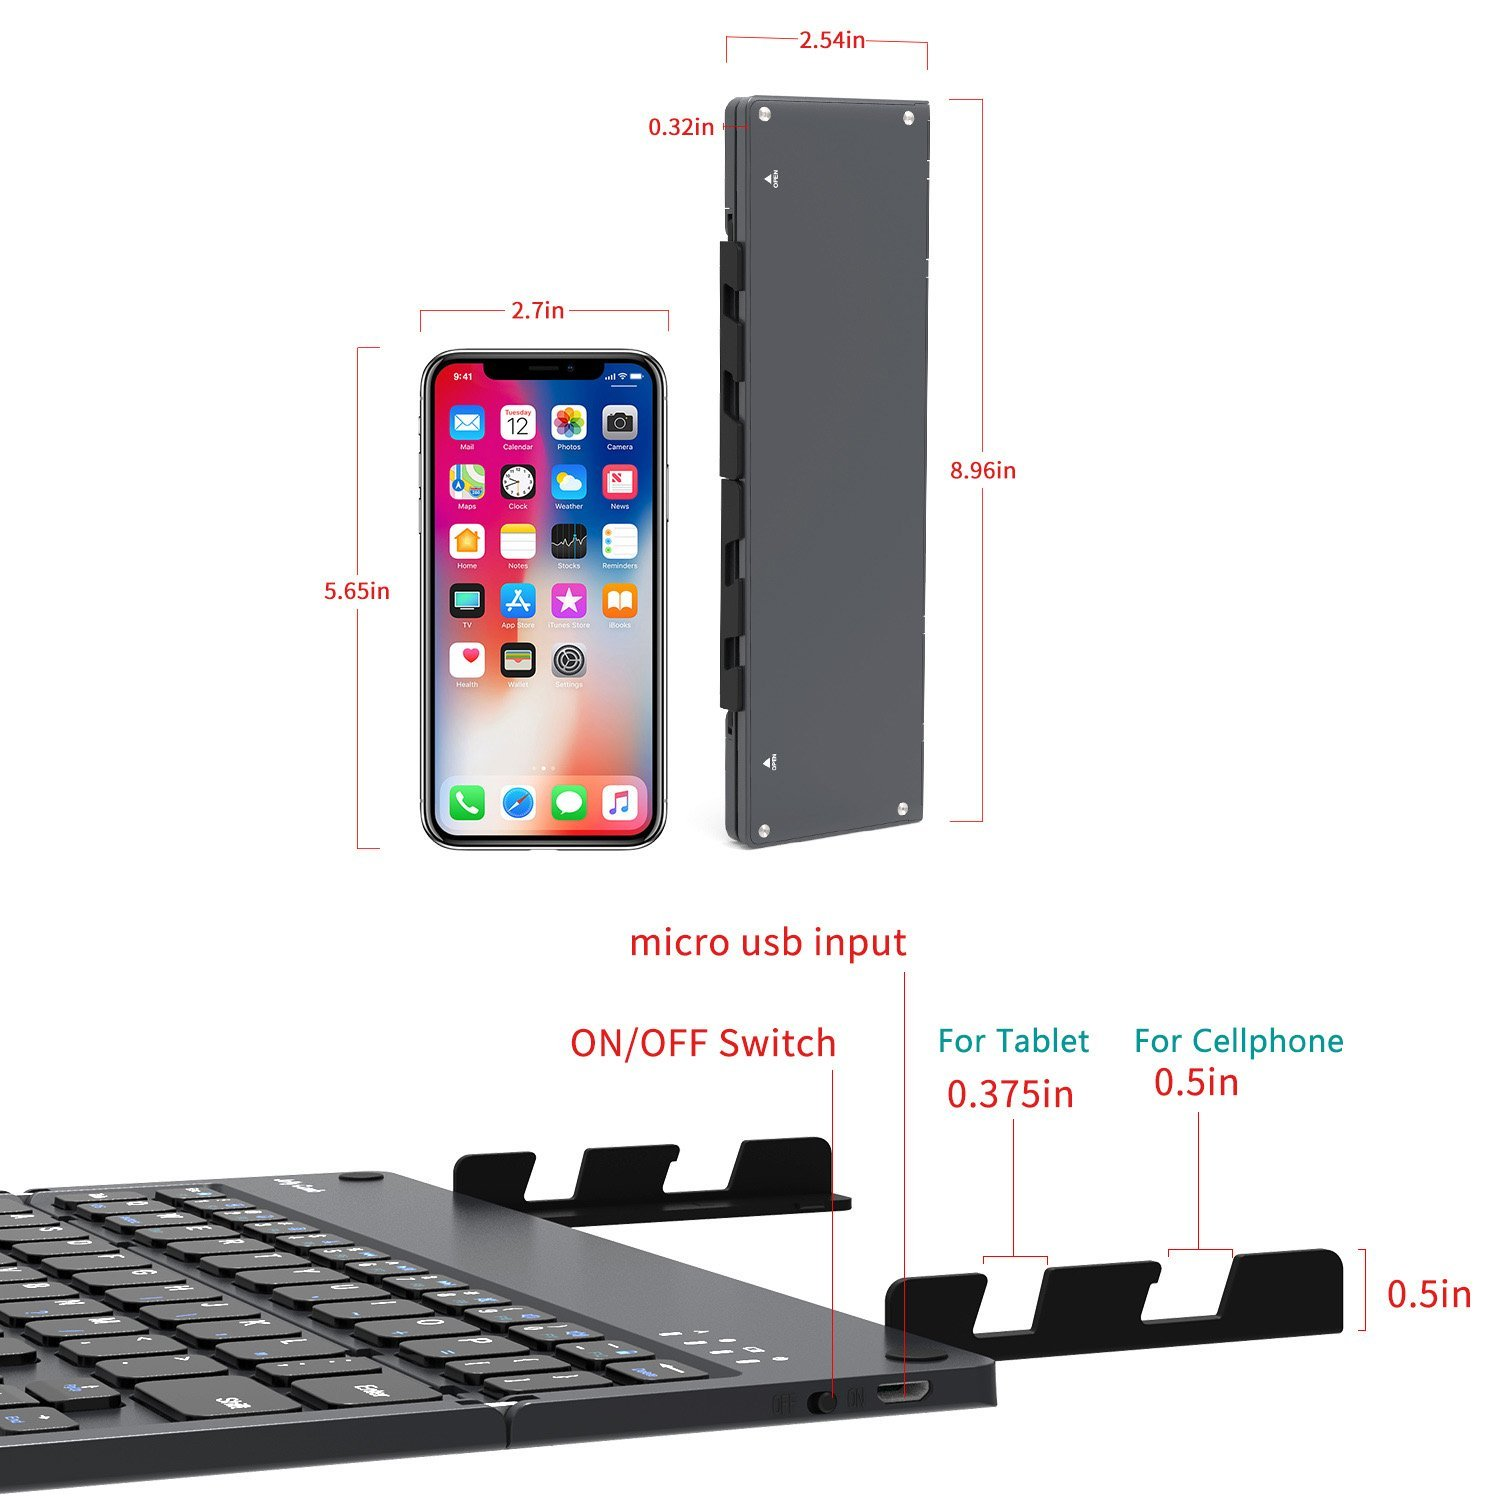 Foldable Bluetooth Keyboard, Jelly Comb B028 Portable Folding Rechargeable Bluetooth Keyboard with Built-in Stand for Android iOS Tablet Smartphone Windows and More-(Dark Grey) by Jelly Comb (Image #9)